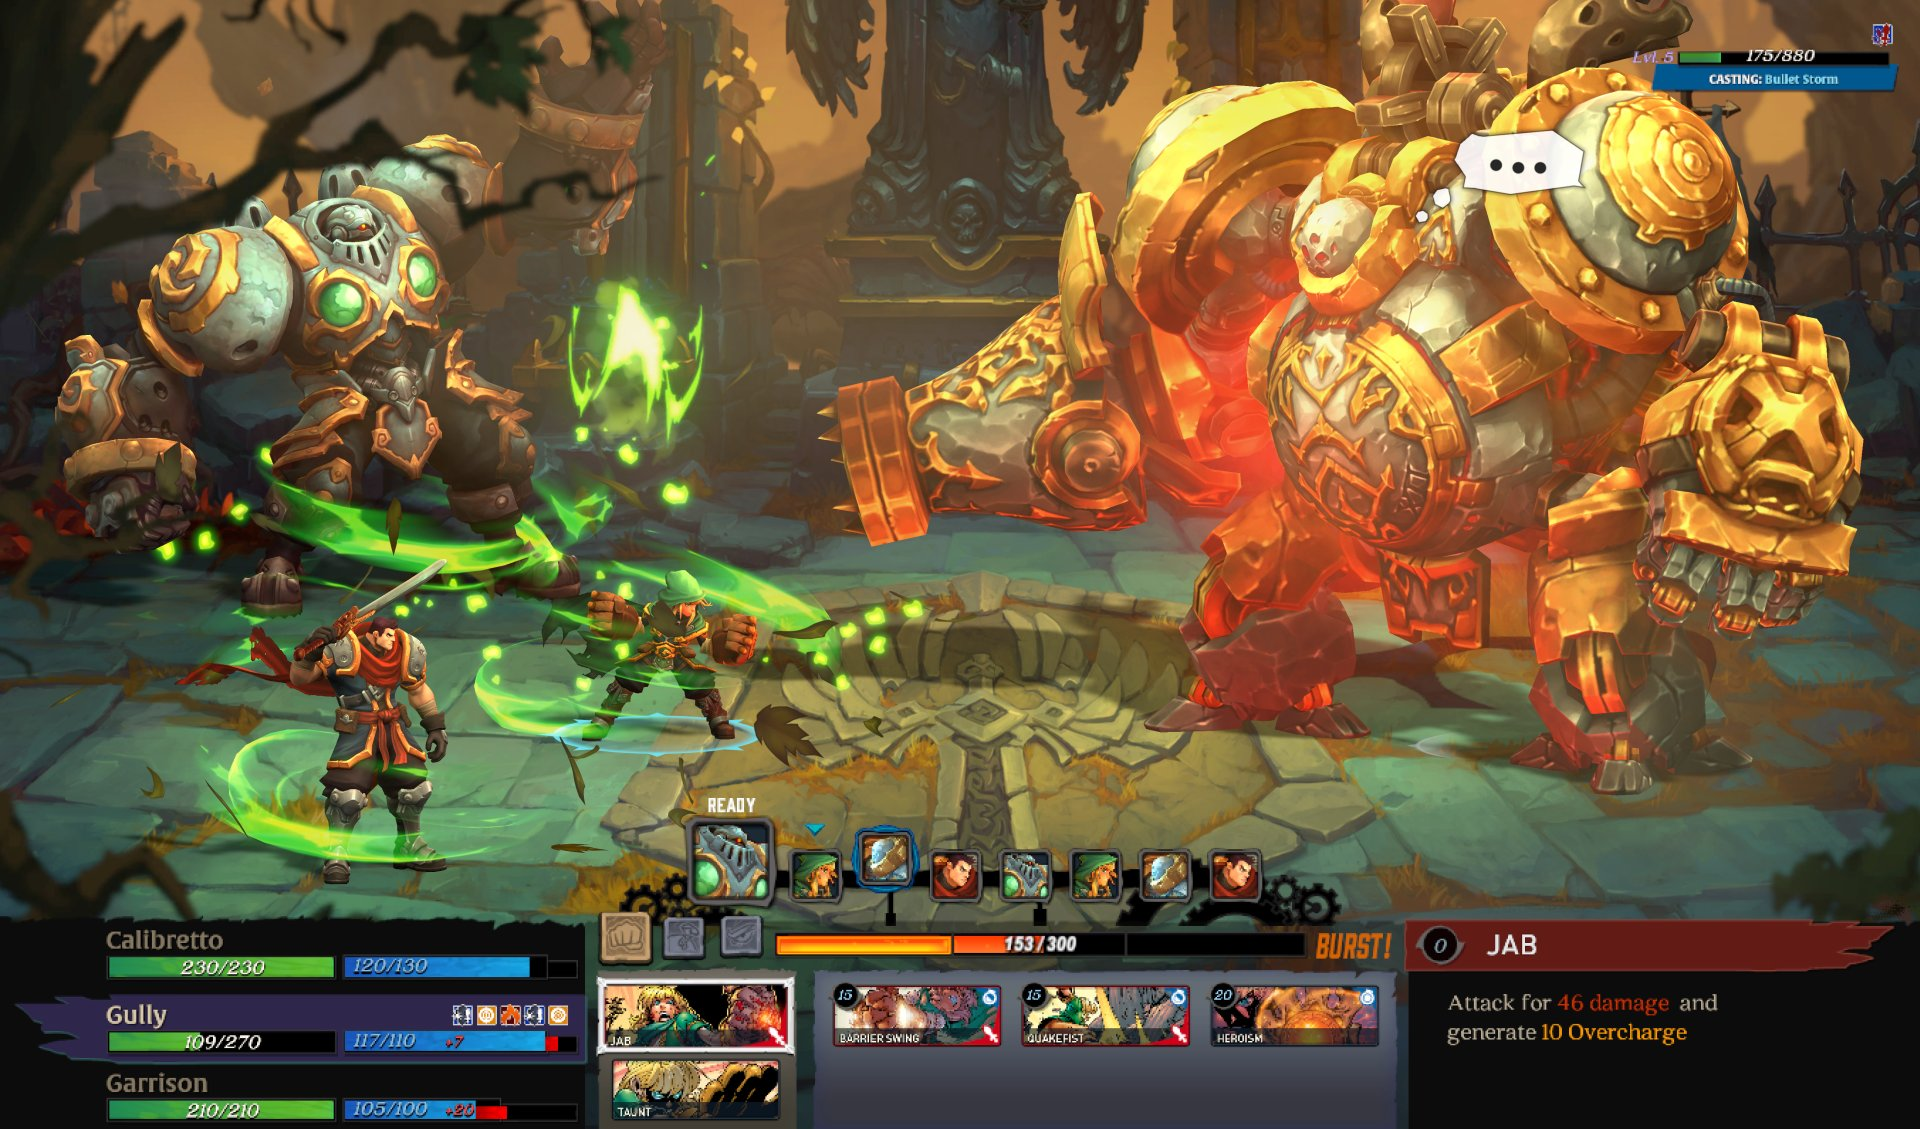 Battle Chasers: Nightwar review combat